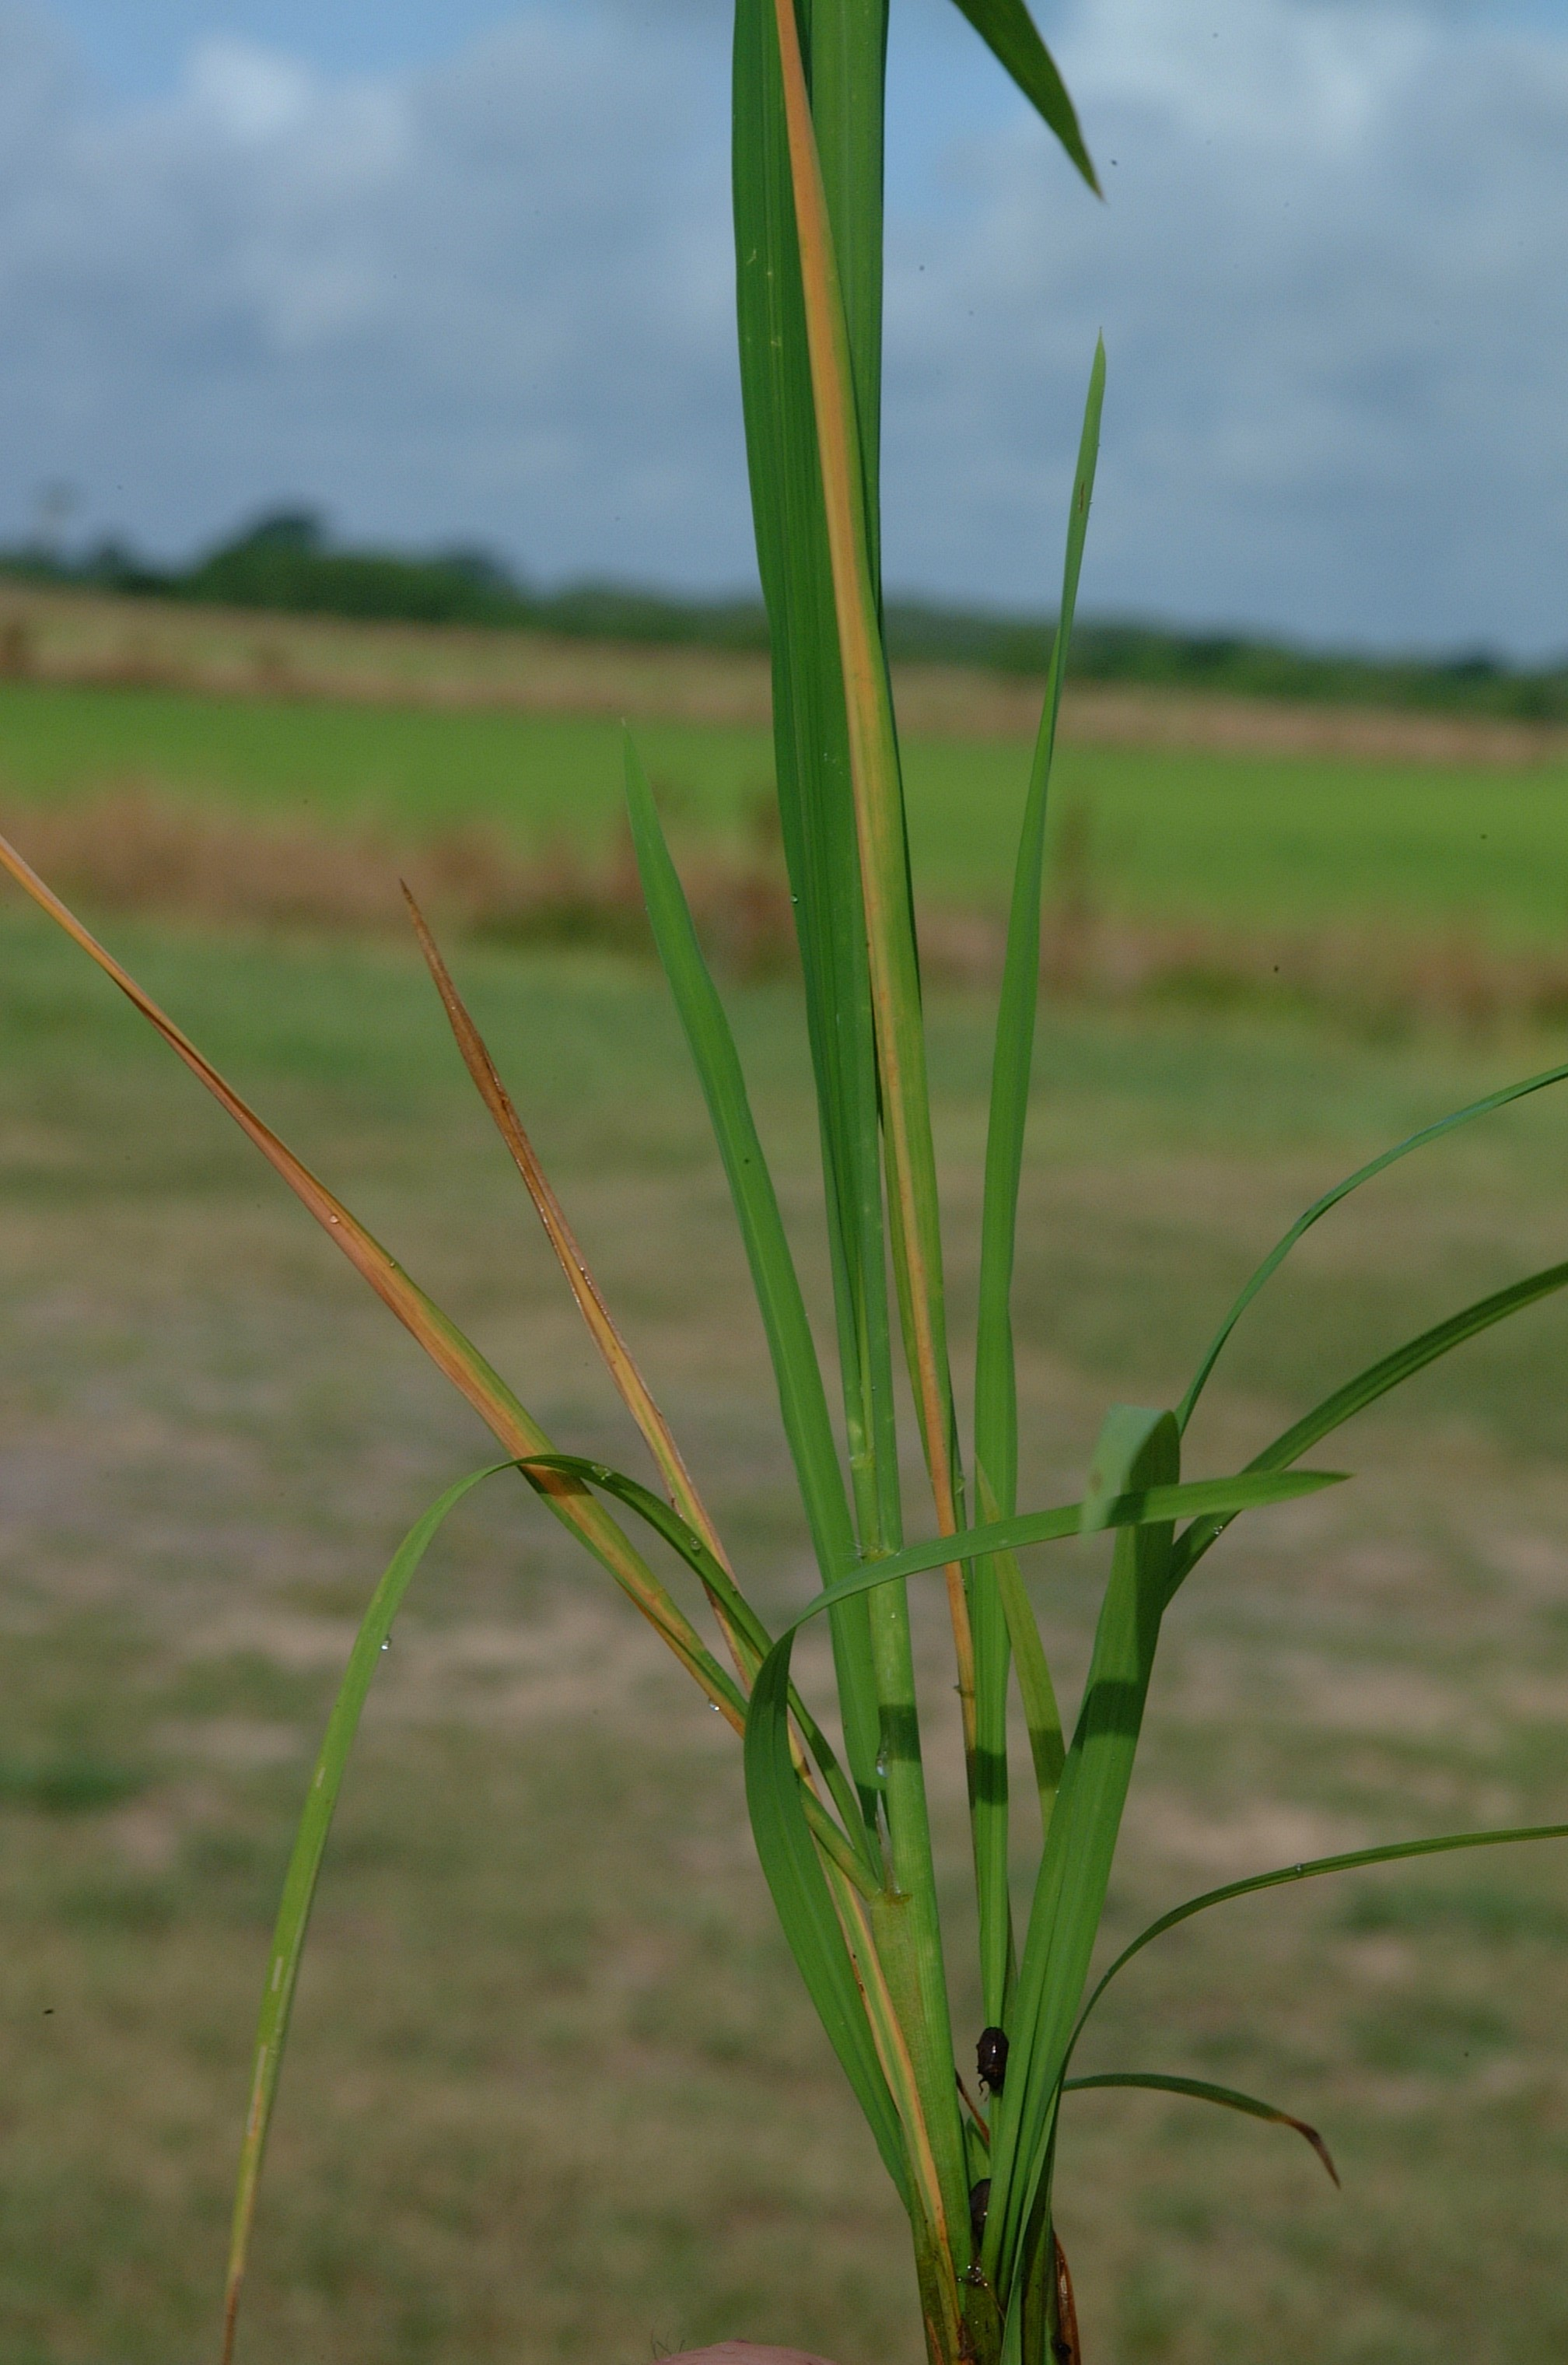 Amaurochrous dubius injury on rice.